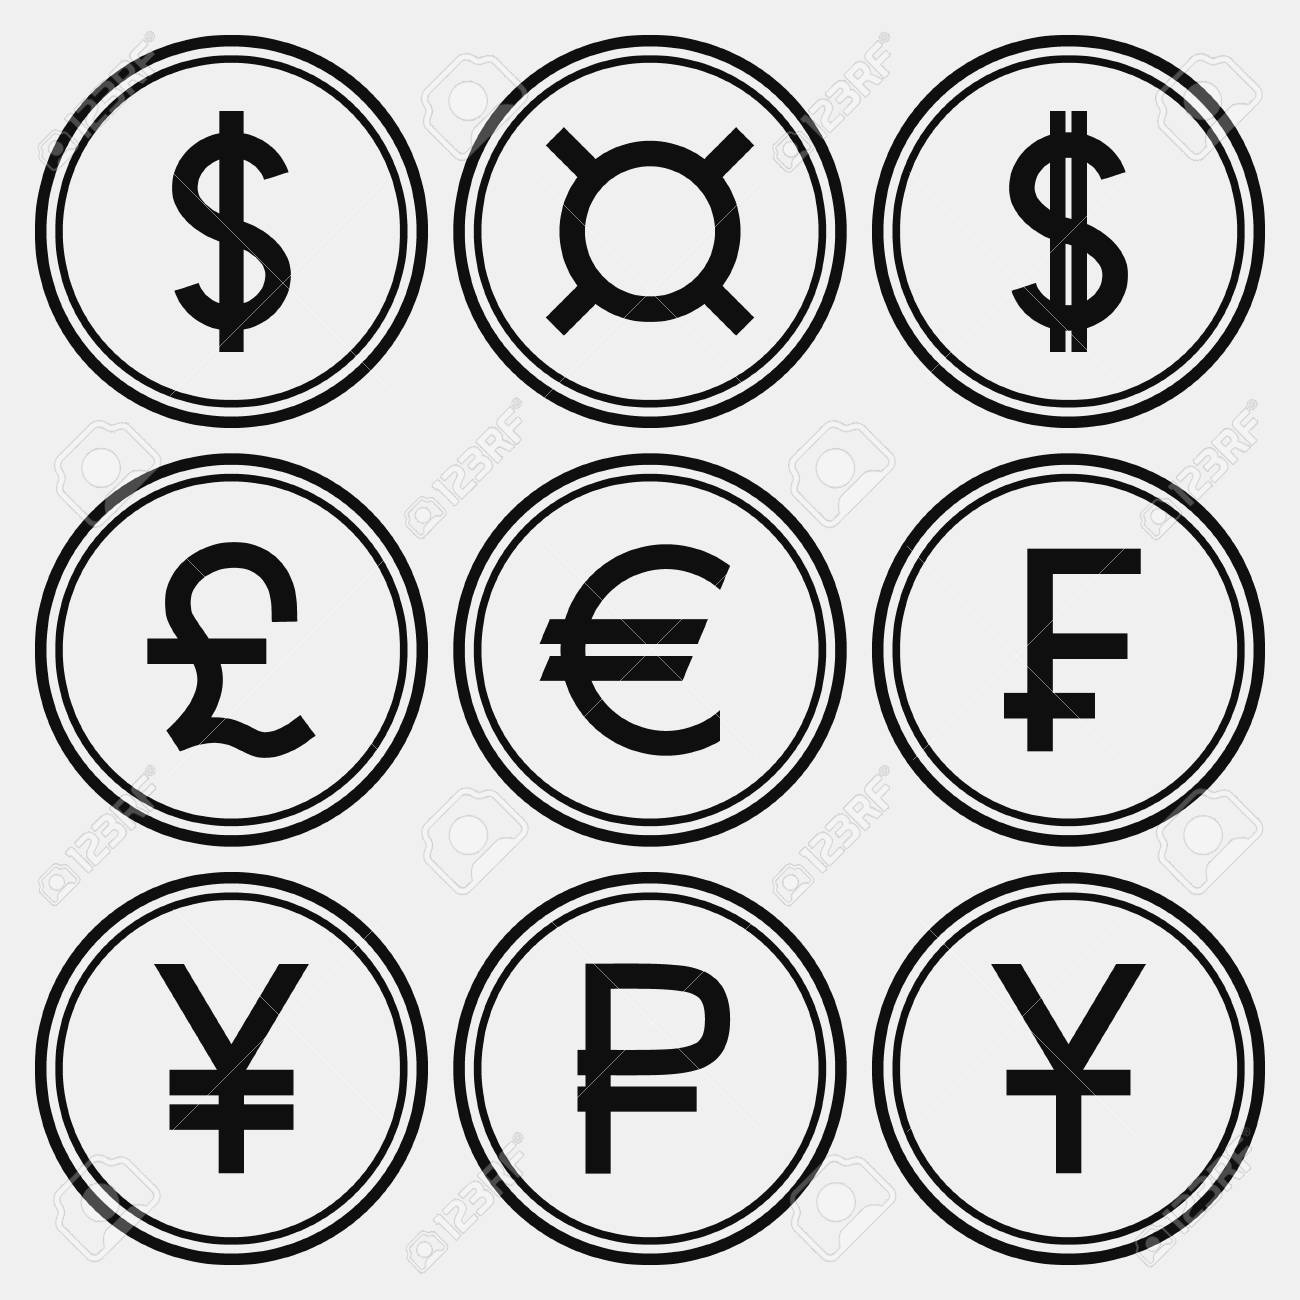 Set of monochrome coin-like icons with different currency symbols